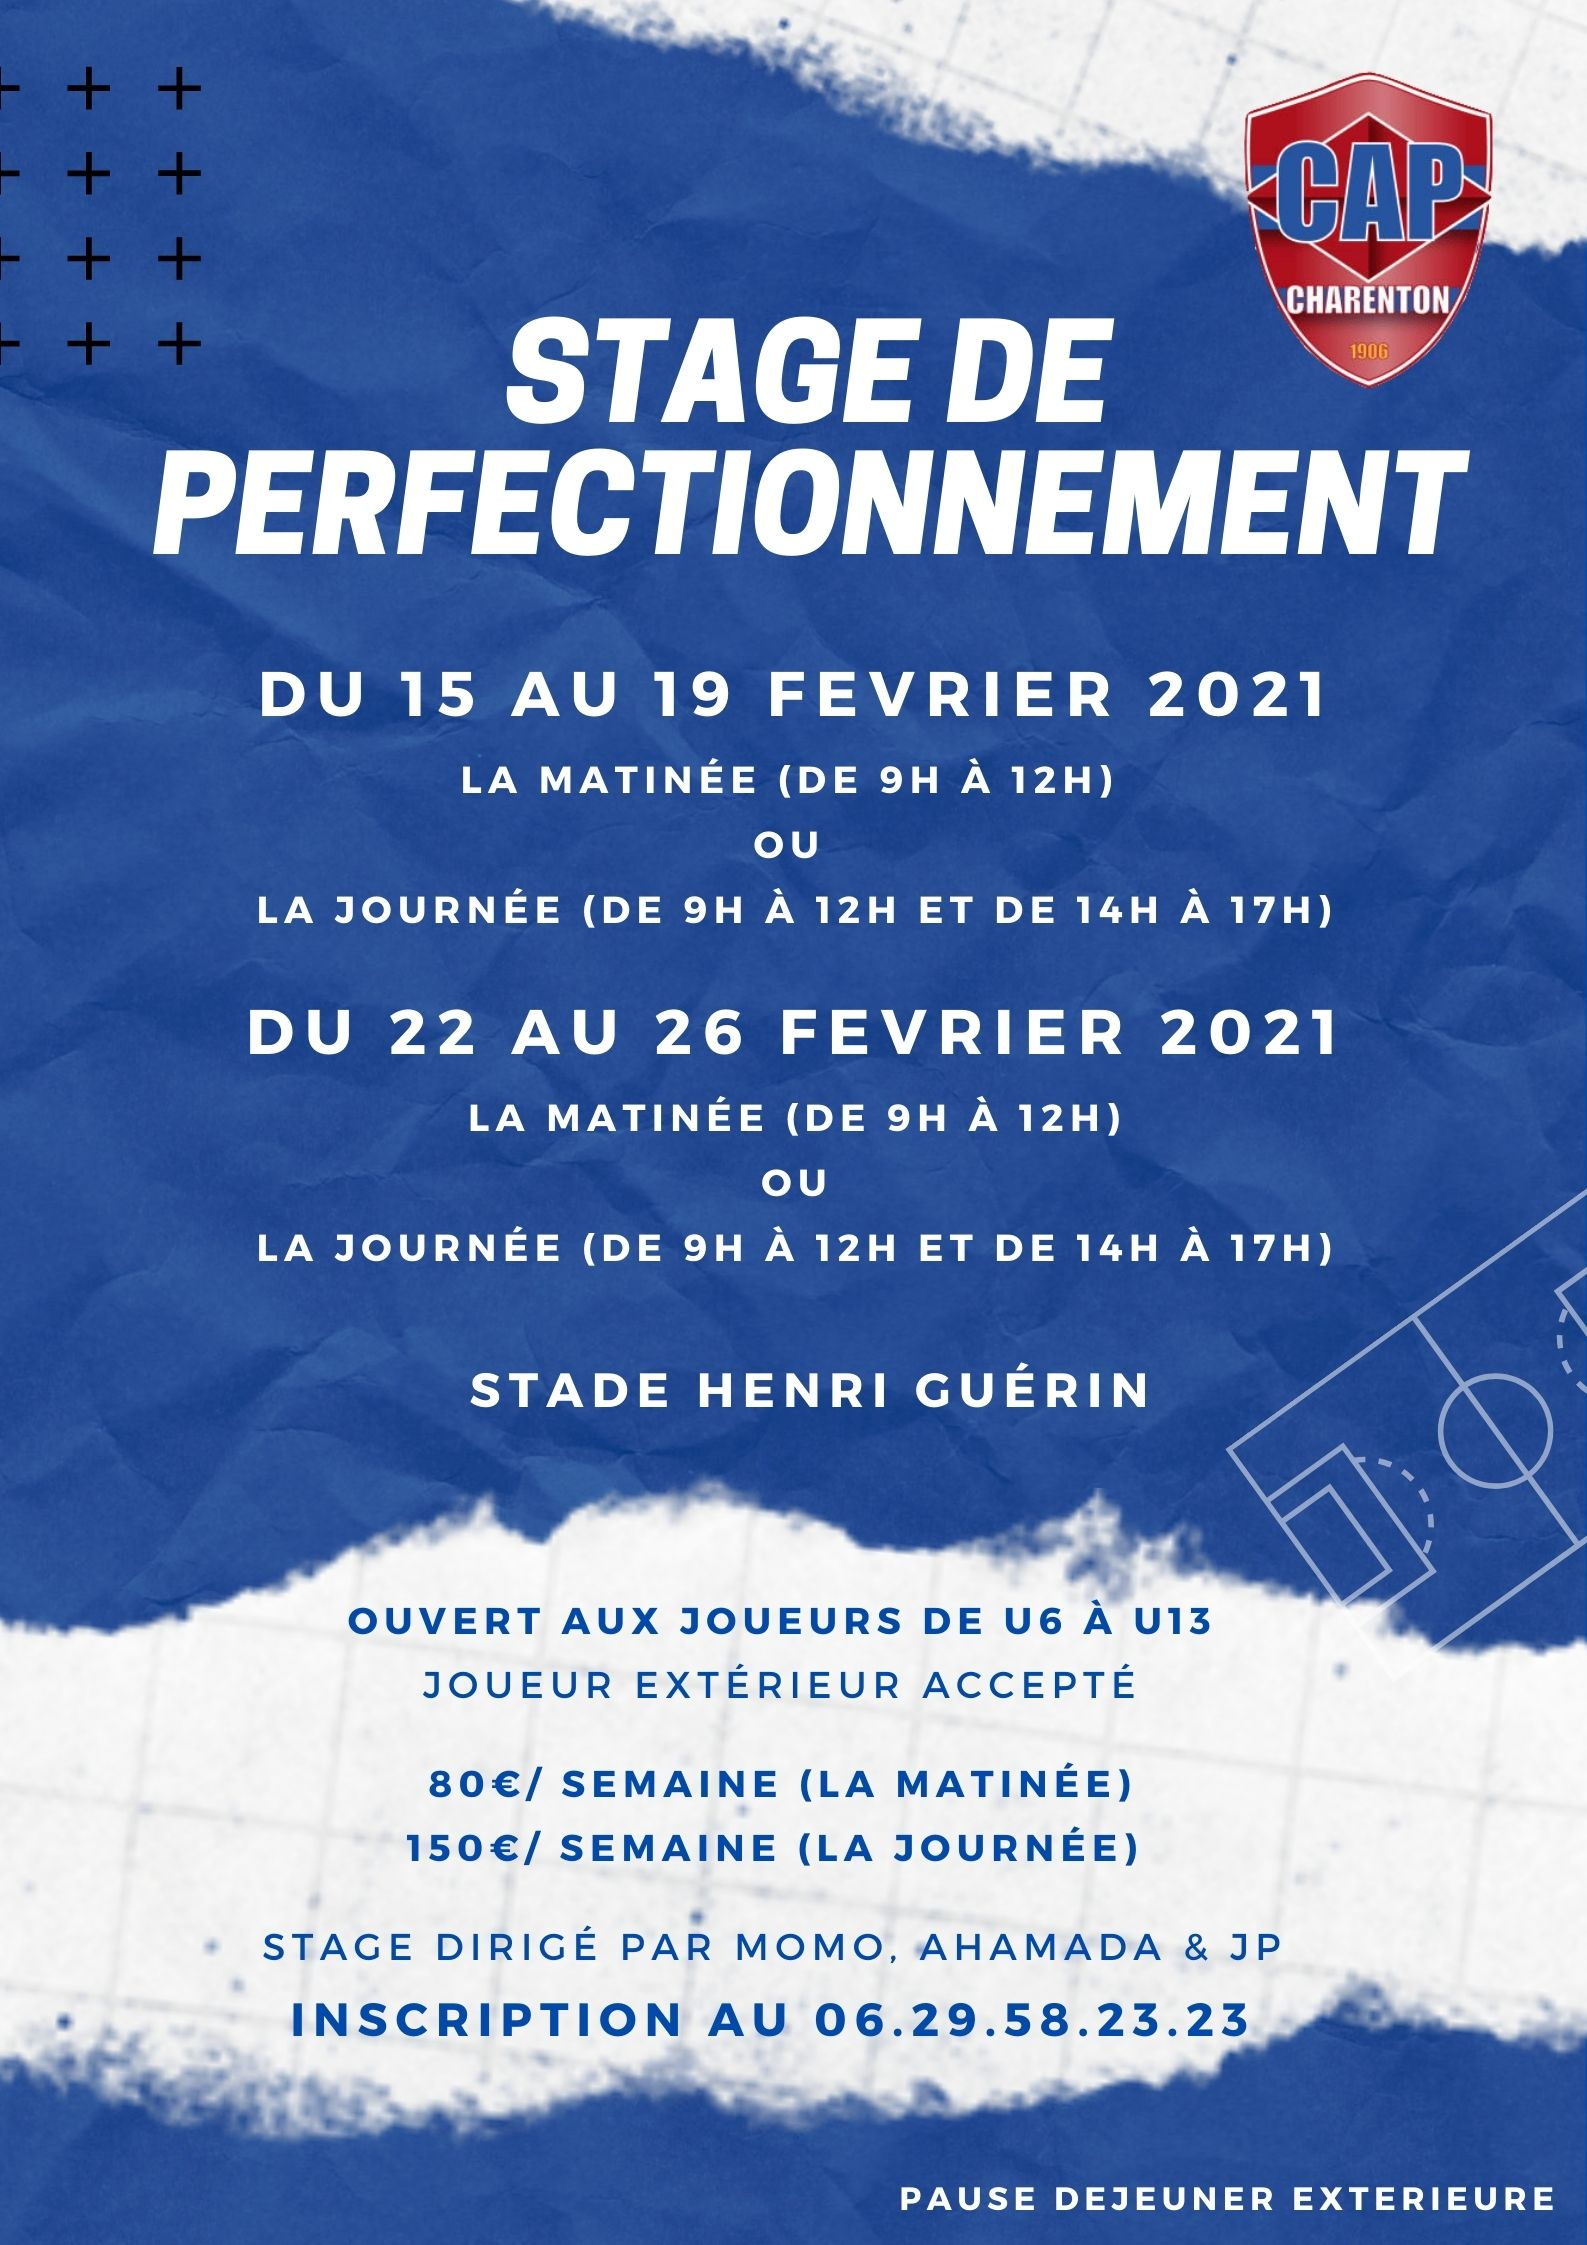 STAGE 02.21